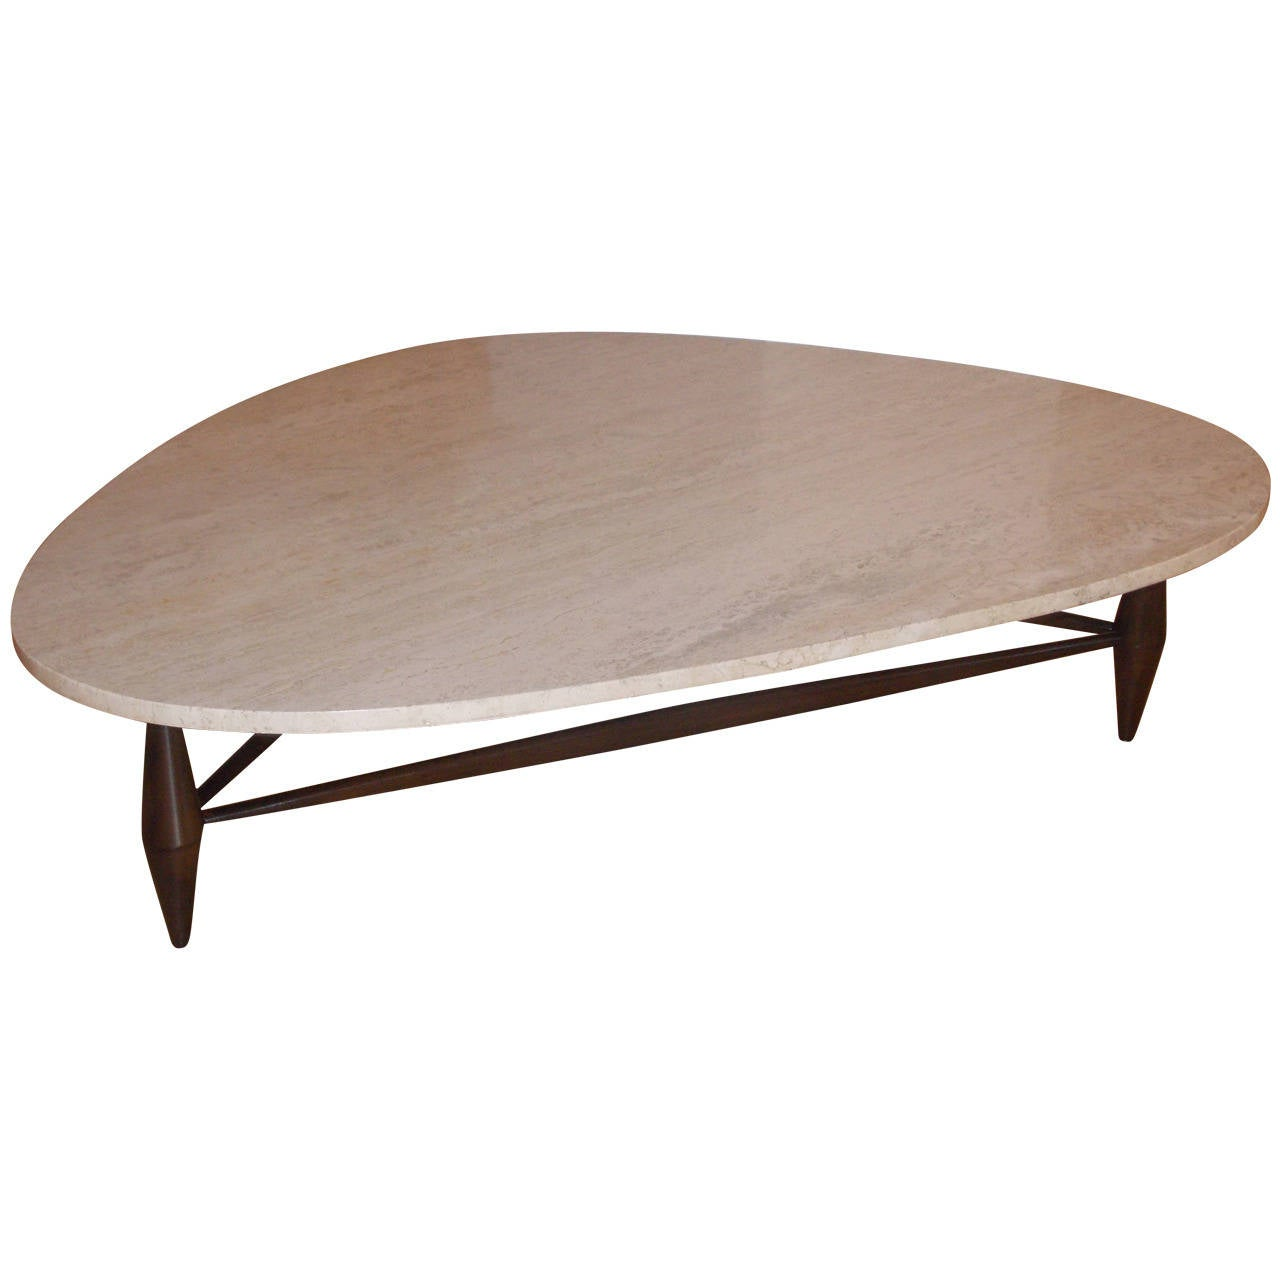 Mid century marble top coffee table at 1stdibs Stone top coffee table